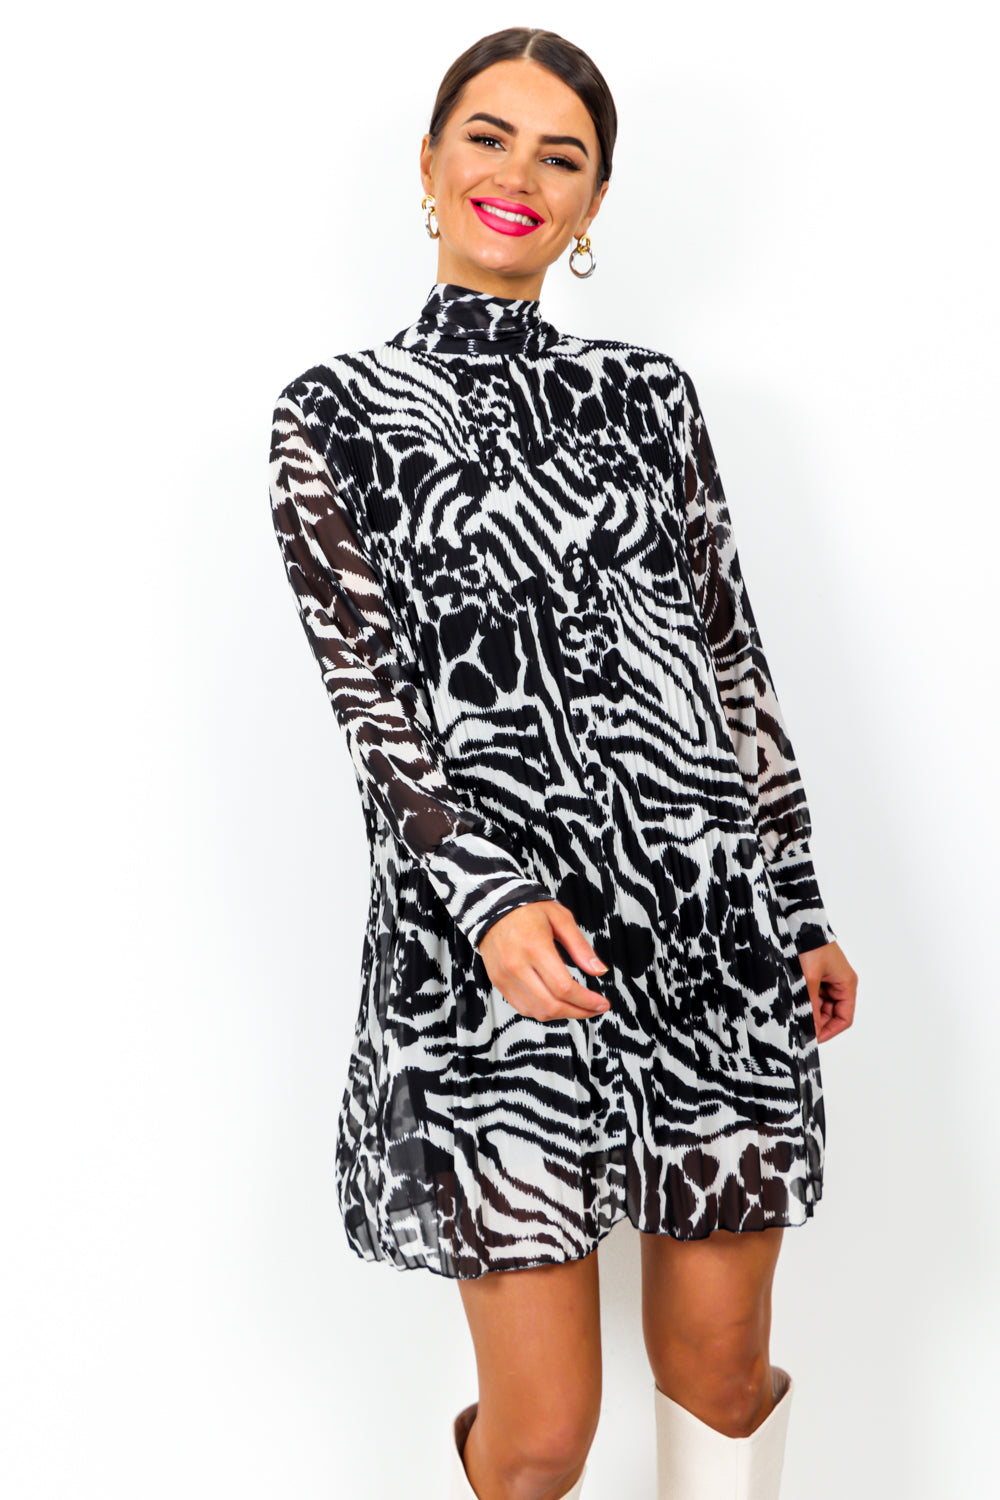 Pleat Treats - Dress In BLACK/ZEBRA